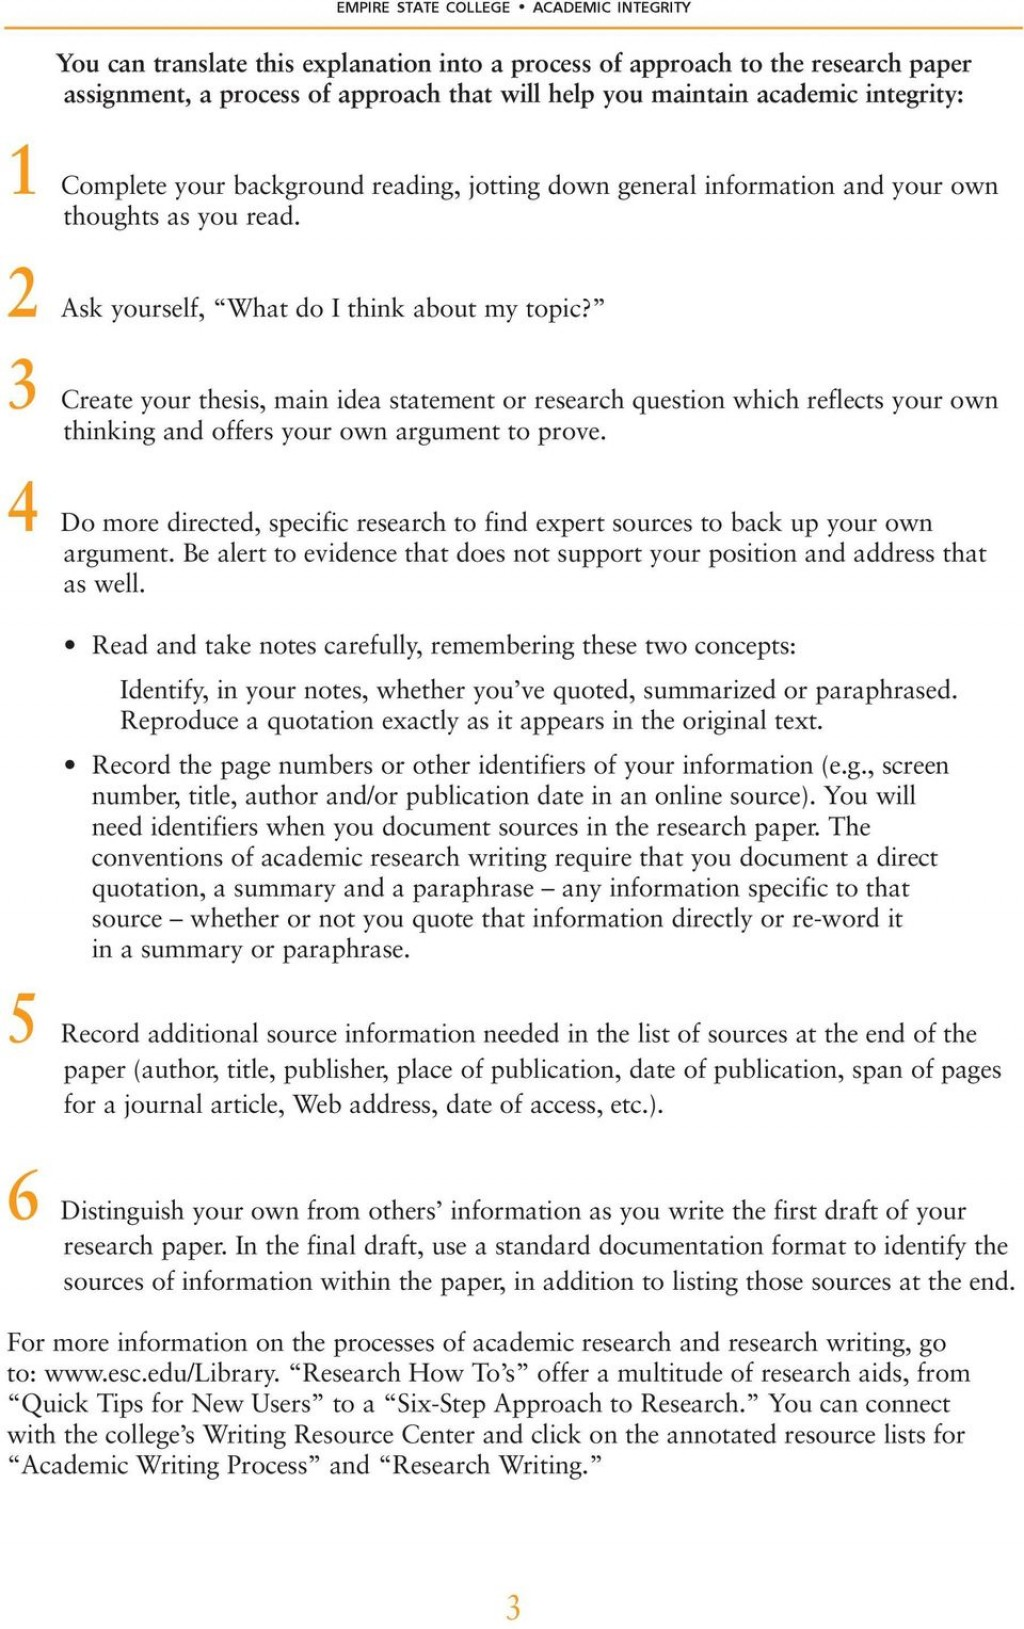 007 Research Paper Page 4 Can I Write My Singular Own Large